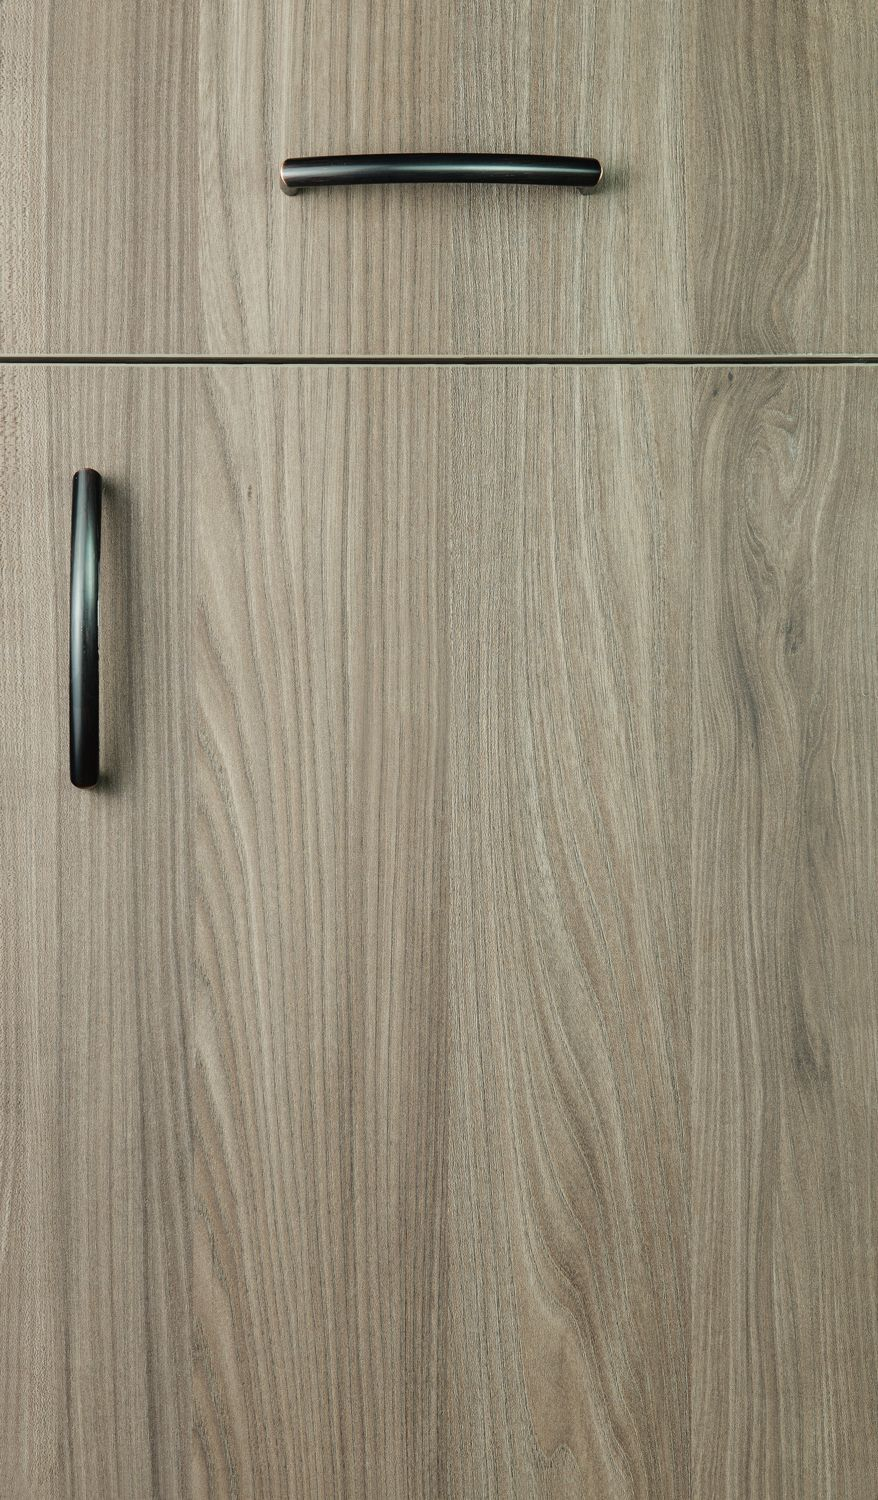 Milano textured melamine door style finished with the light brown